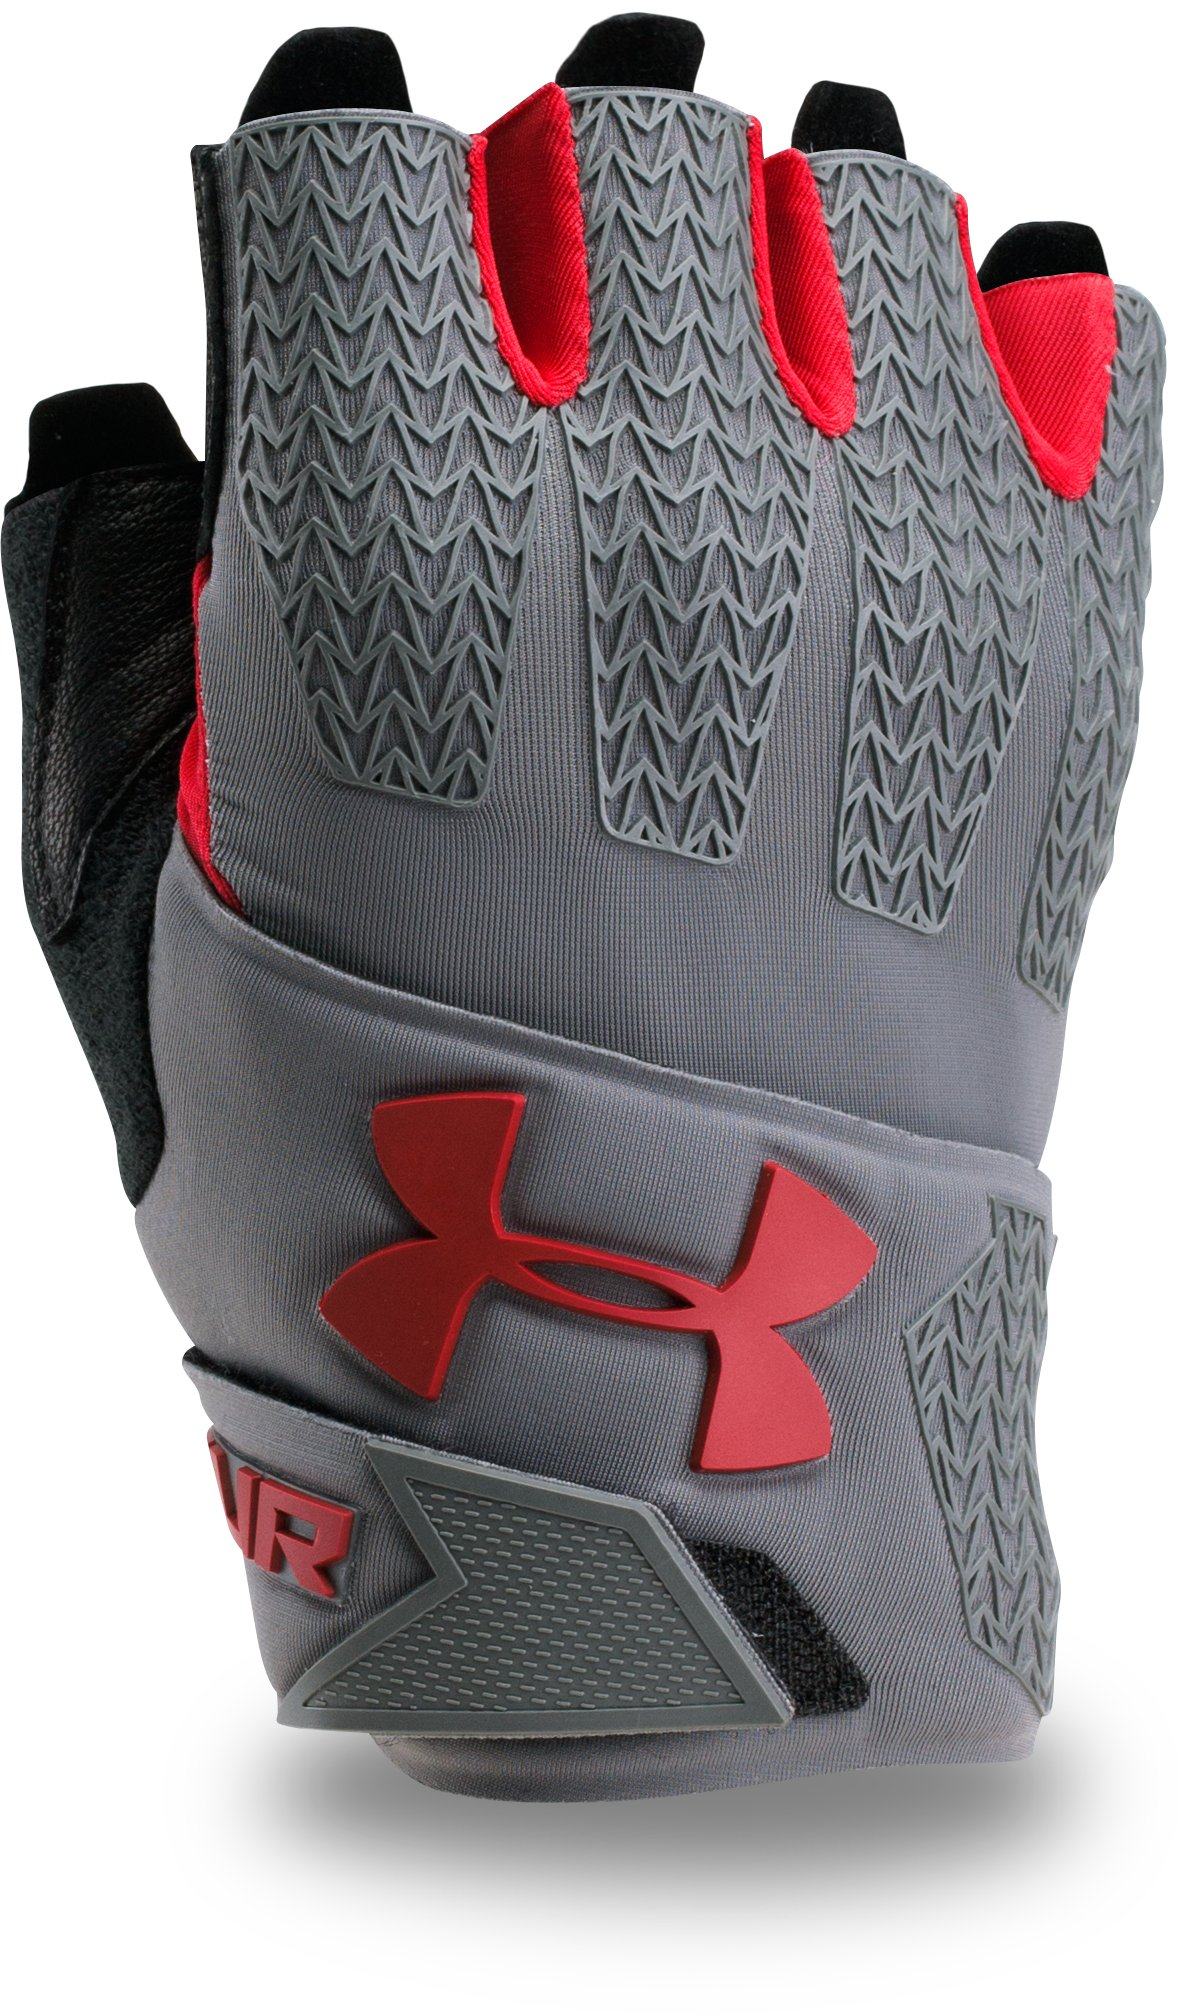 graphite gloves Men's UA ClutchFit® Resistor Training Gloves Also great for workouts!...grips well and gives alot of comfort....Over all this product has been awesome!